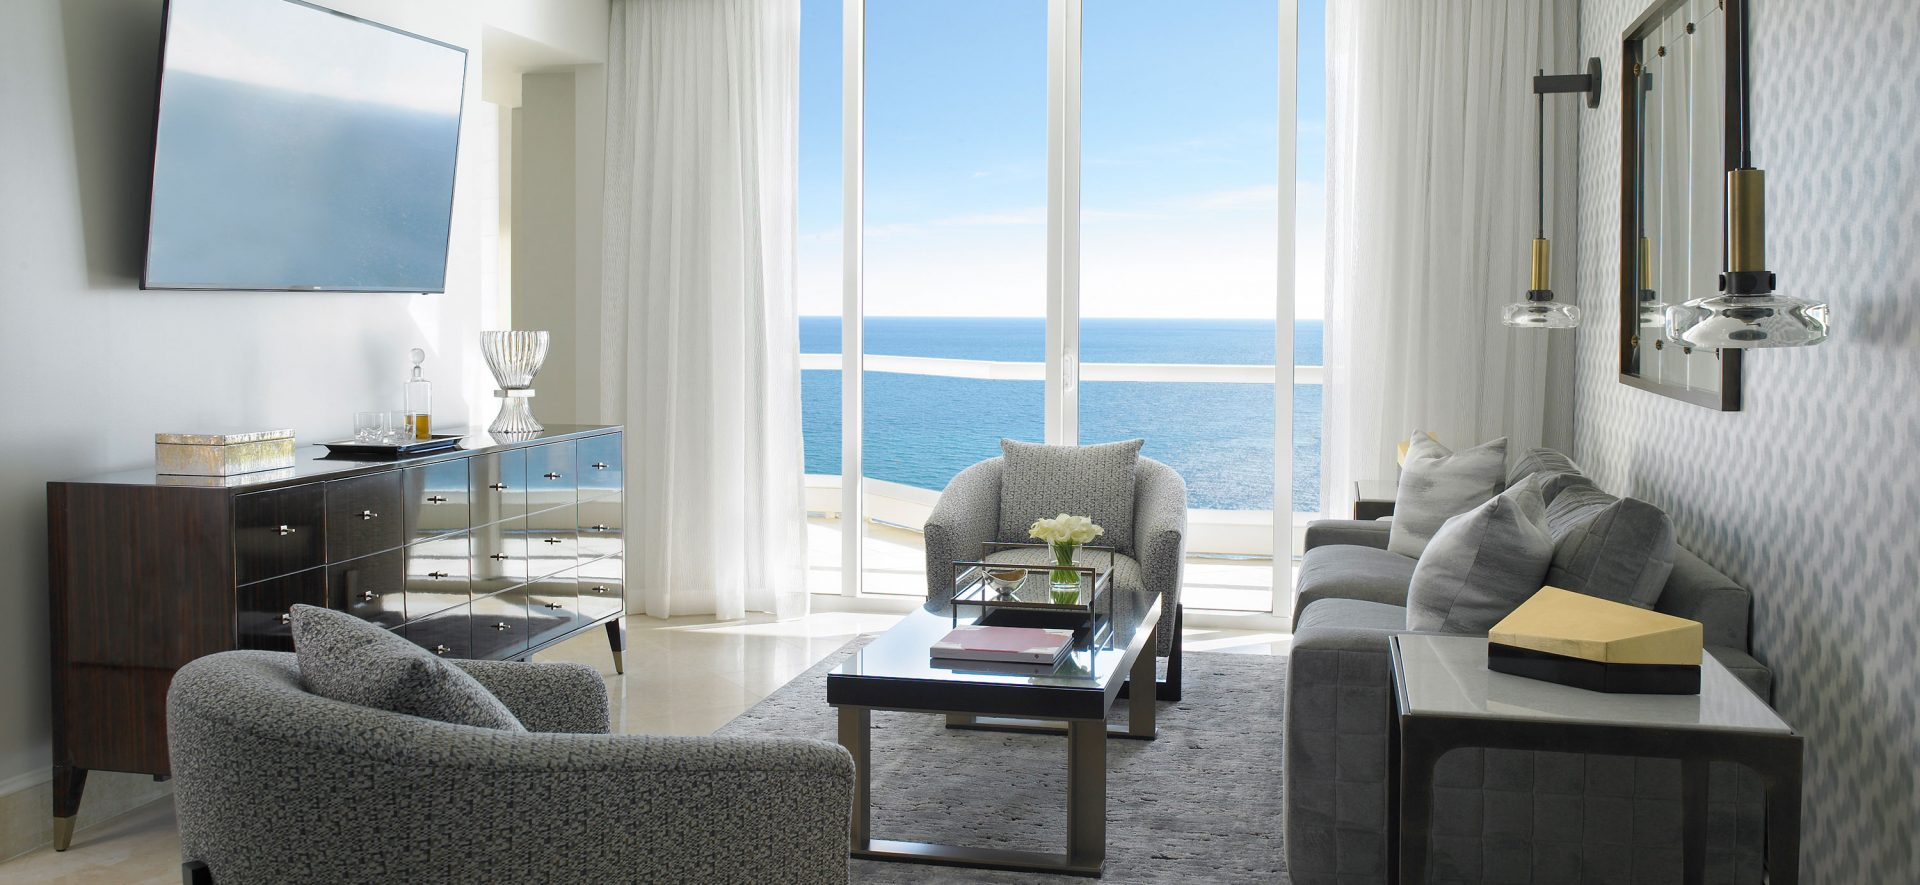 The new Grand Deluxe Three-Bedroom Oceanfront Suite at Acqualina Resort in Sunny Isles Beach, Florida.